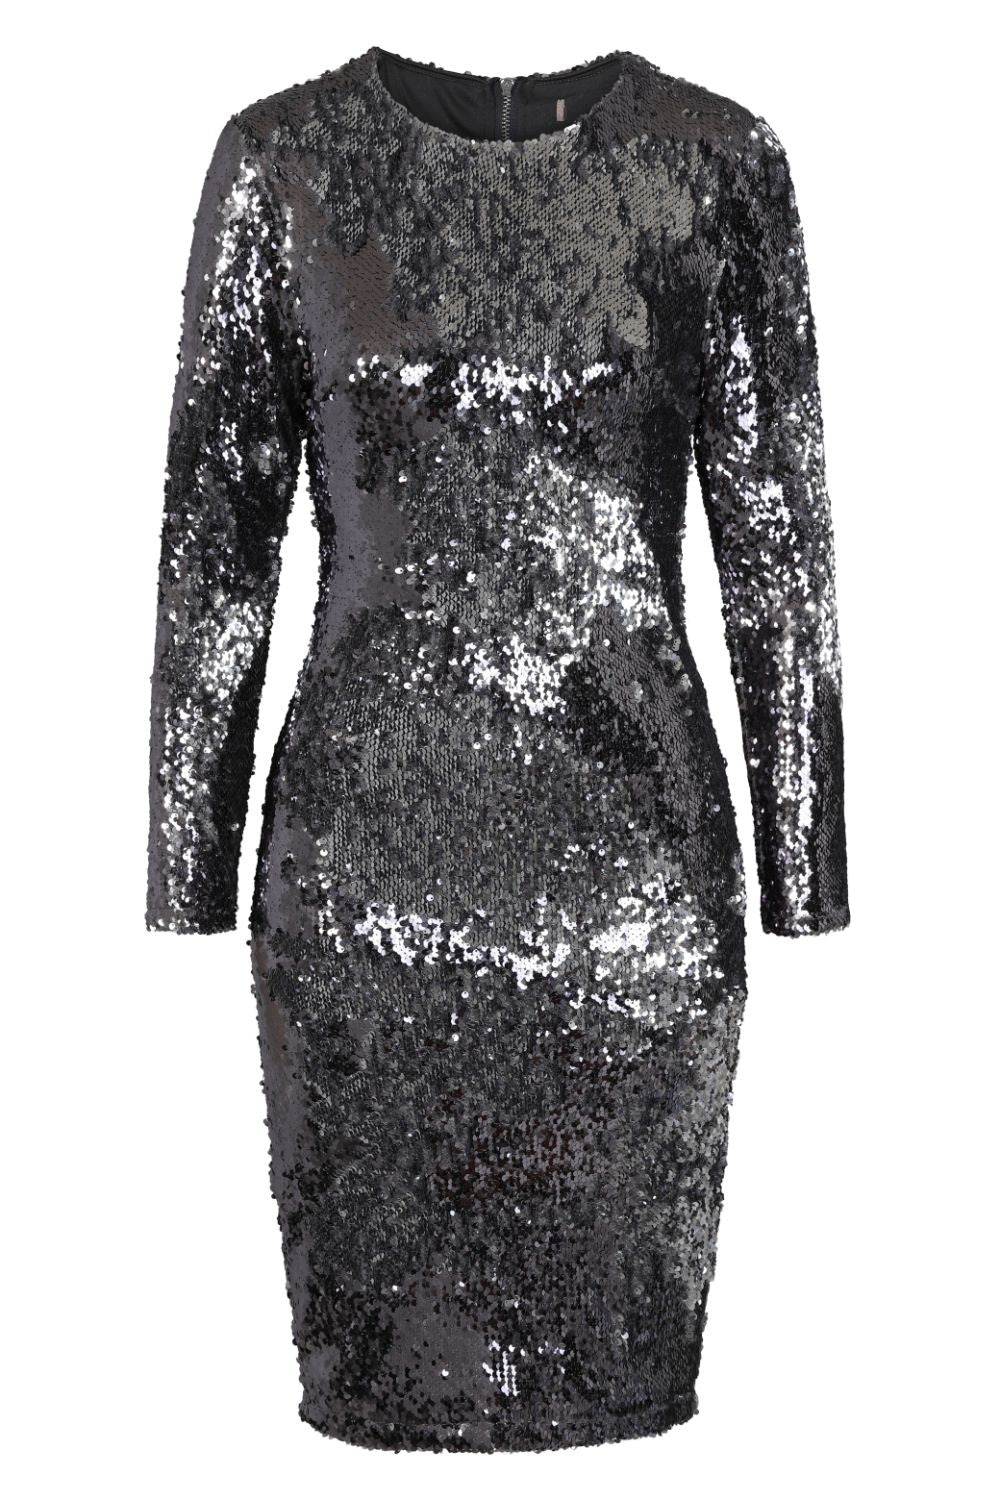 Starlight Chrome Silver Luxe Reversible Sequin Long Sleeve Midi Dress